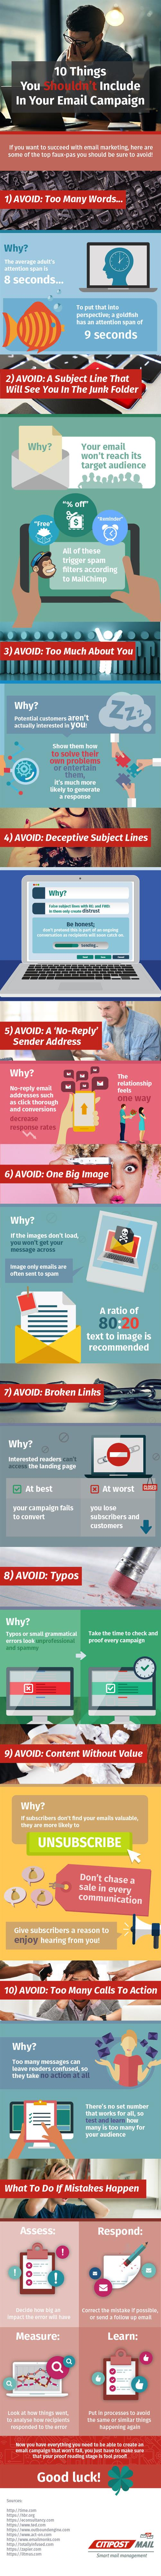 Email Campaign Today and 10 Ways To Ruin It [Infographic]